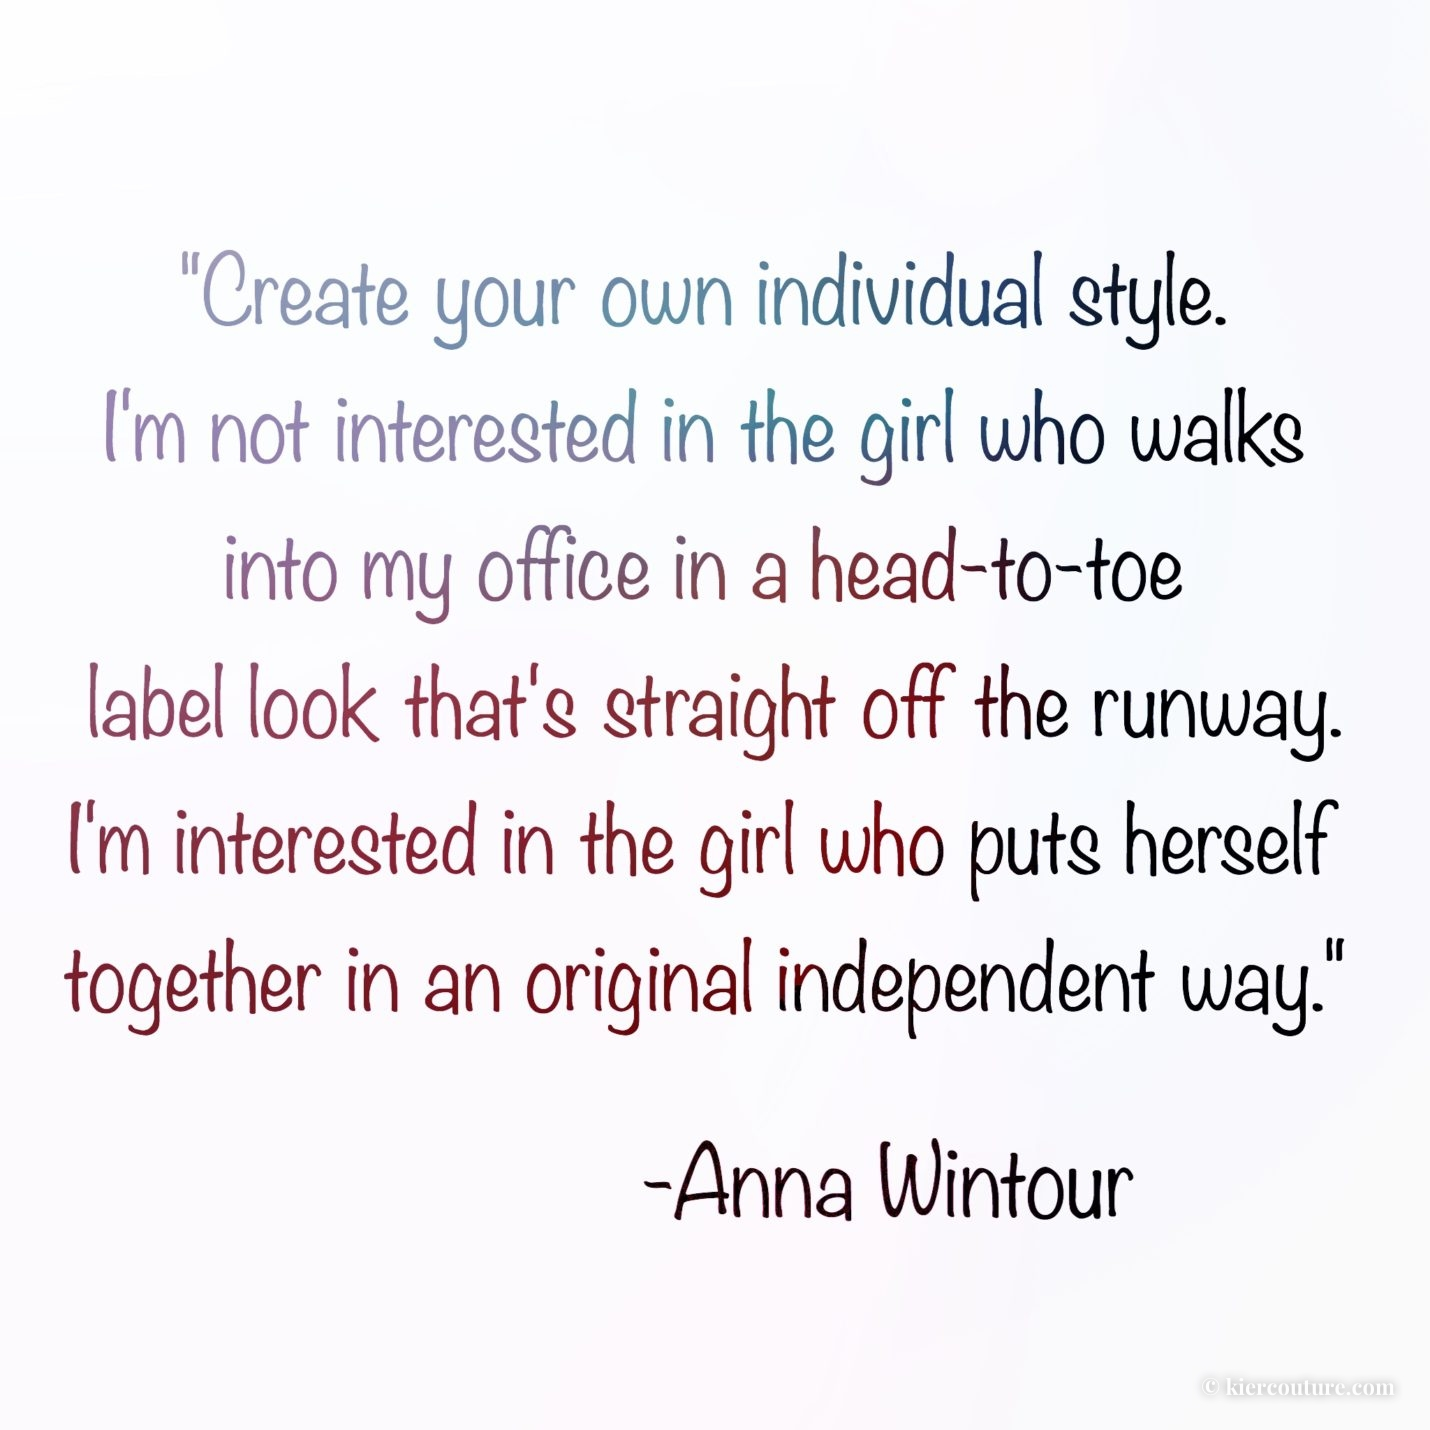 anna wintour individual style quote